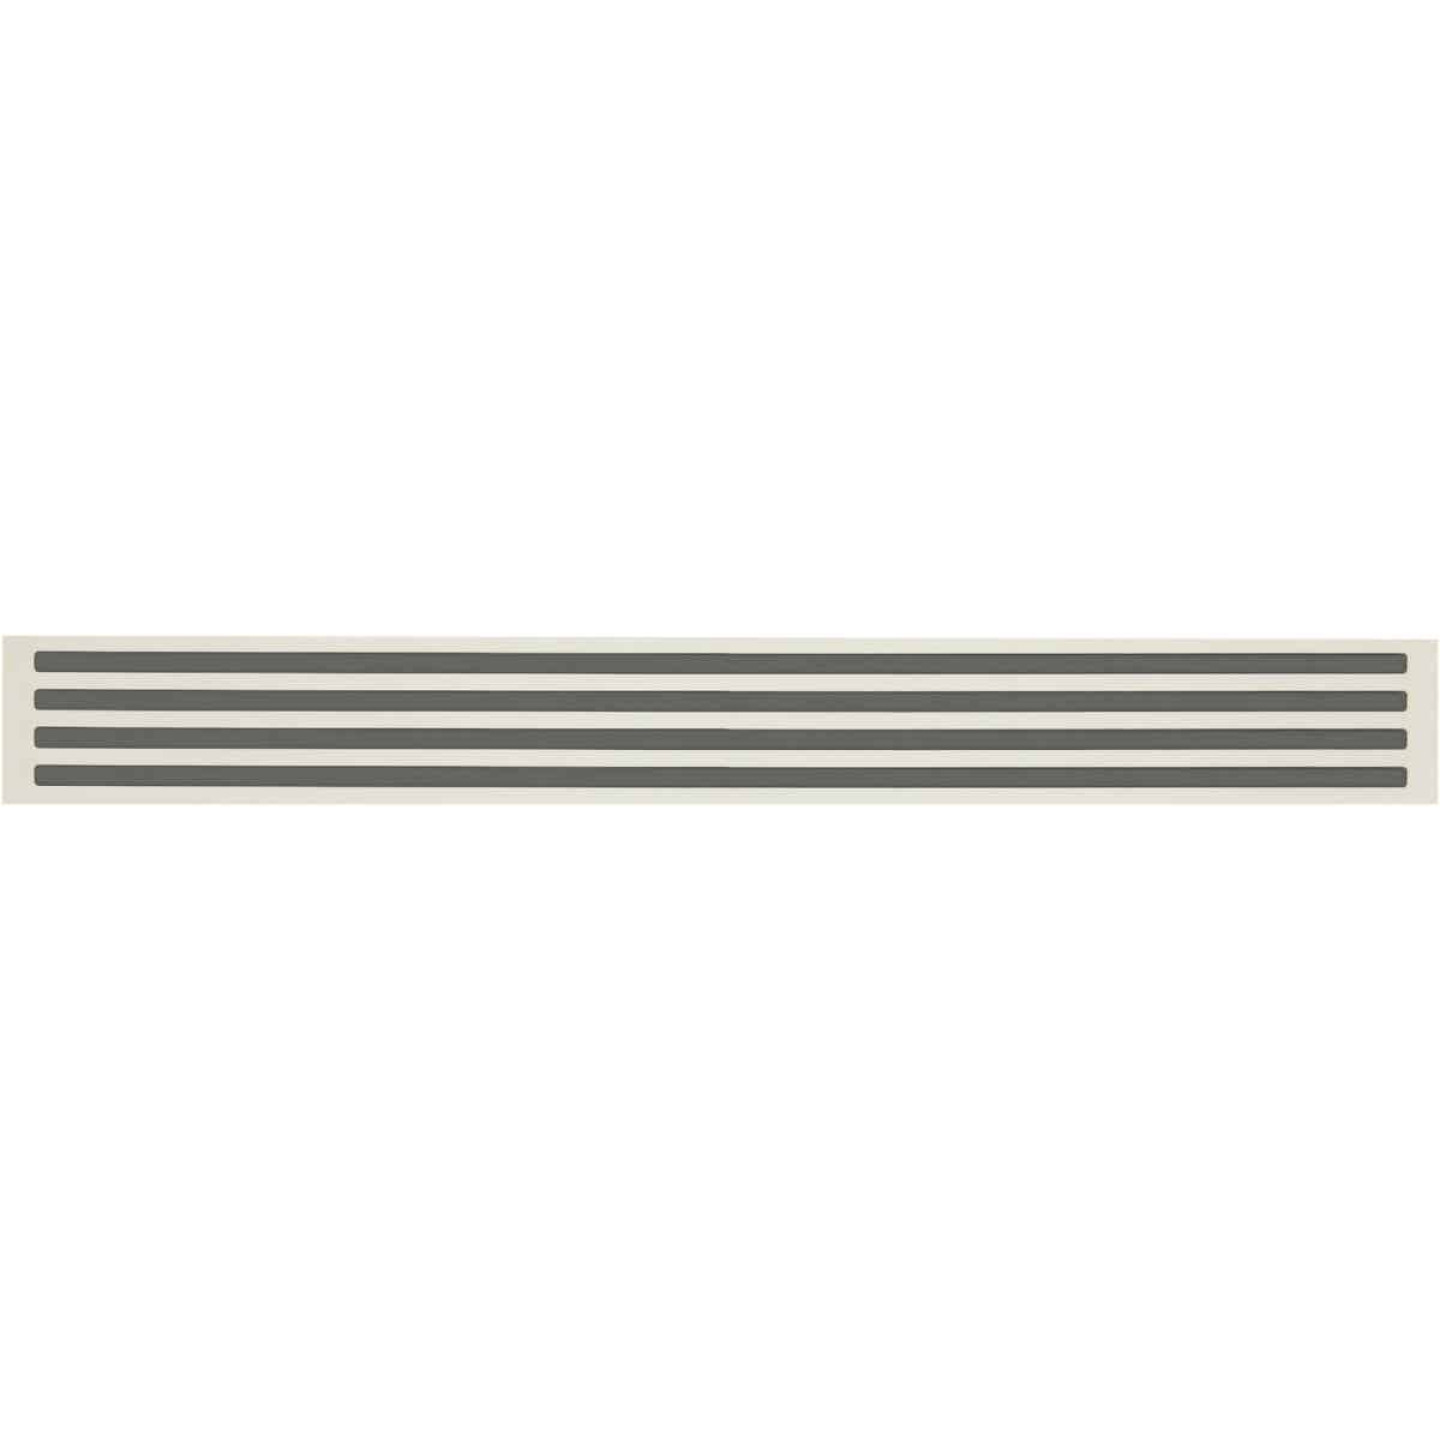 Smart Edge 0.27 In. x 18 In. Peel & Stick Edge Backsplash Trim, Orfero (4-Pack) Image 1